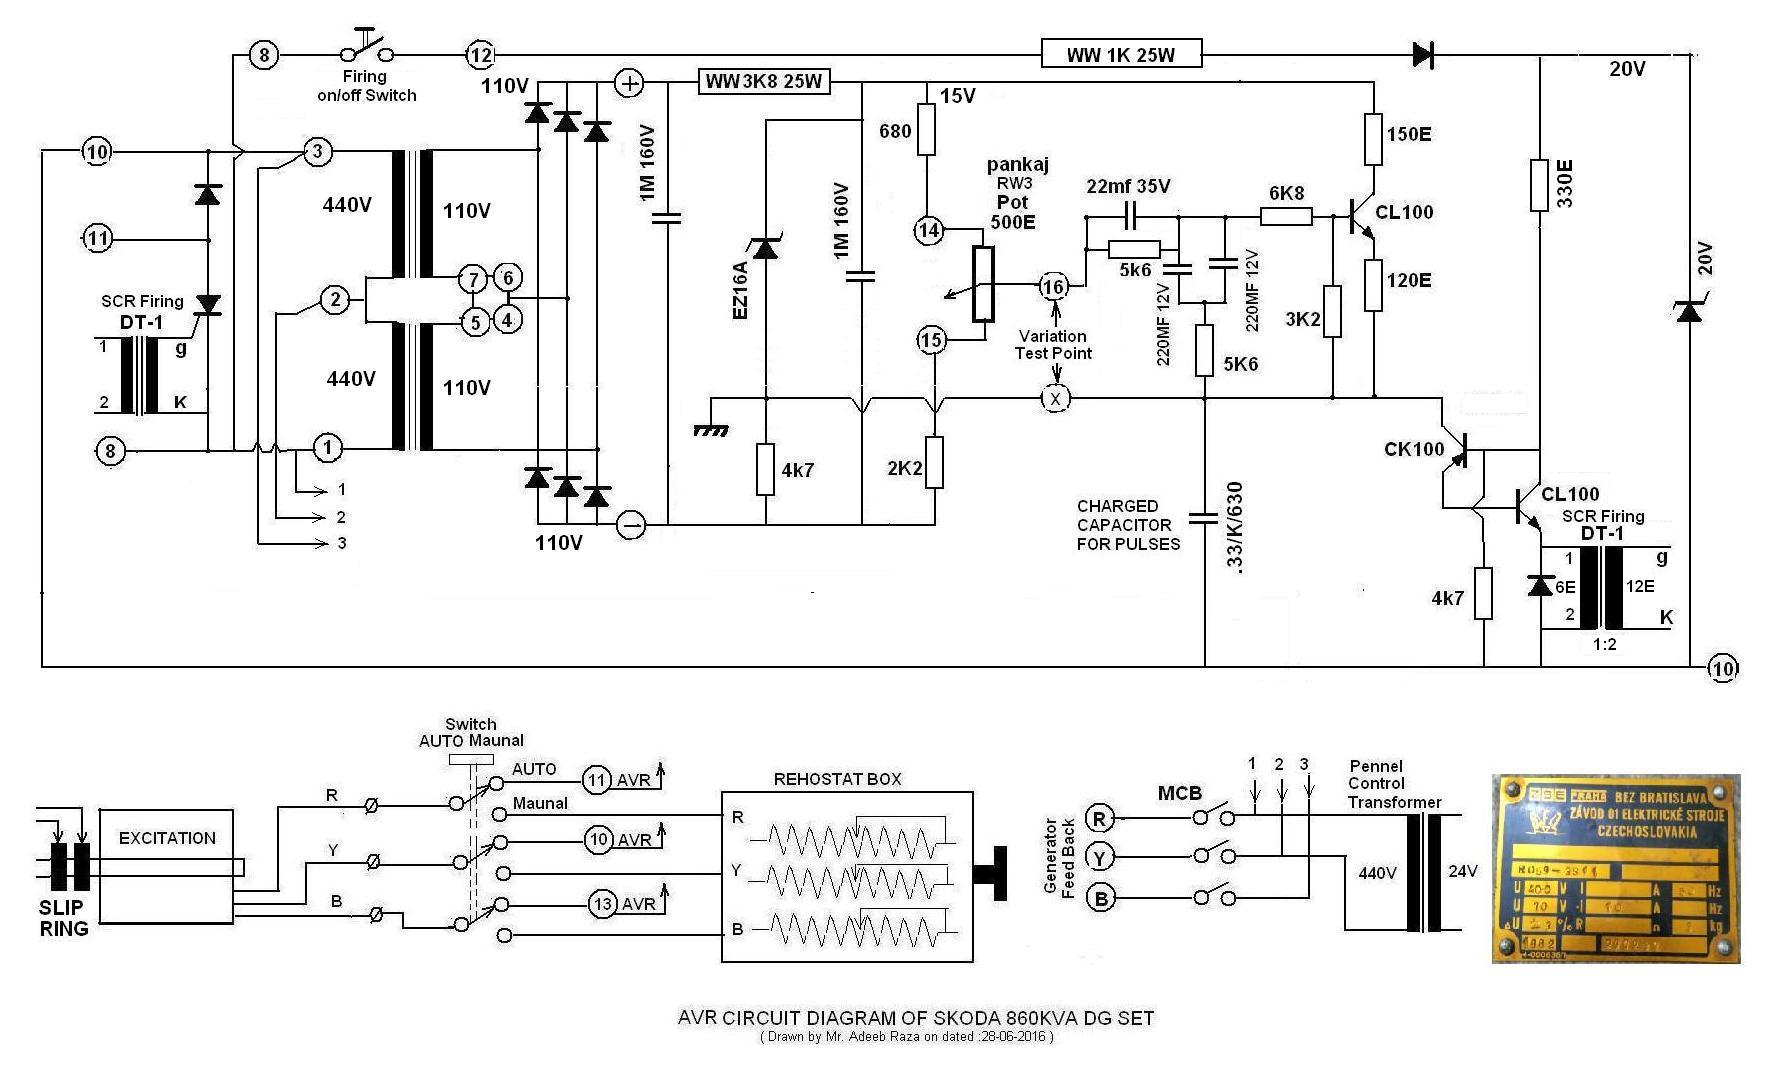 Skoda 860 Kva Dg Set Circuit Diagram Of Avr Adeebs Space Inverter On Images For Using Sg3524 Image